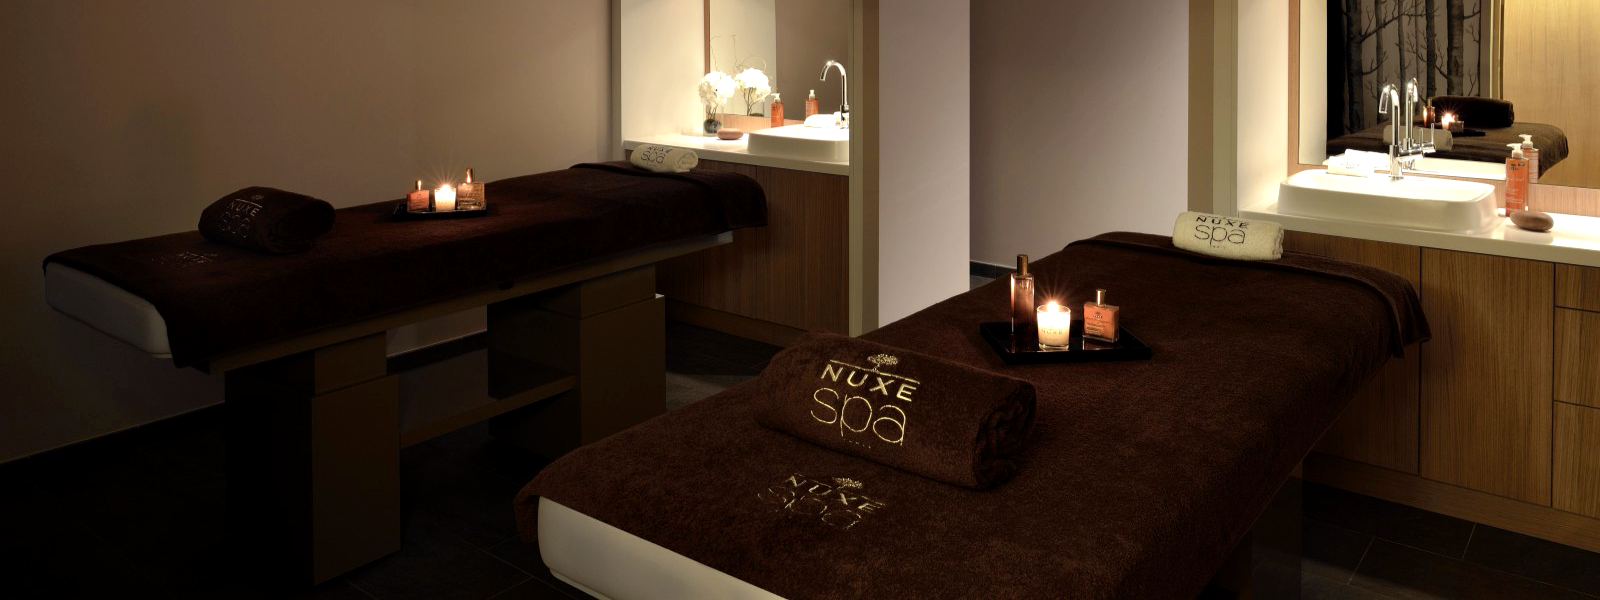 Spa - Table de massage - Esthetic Design